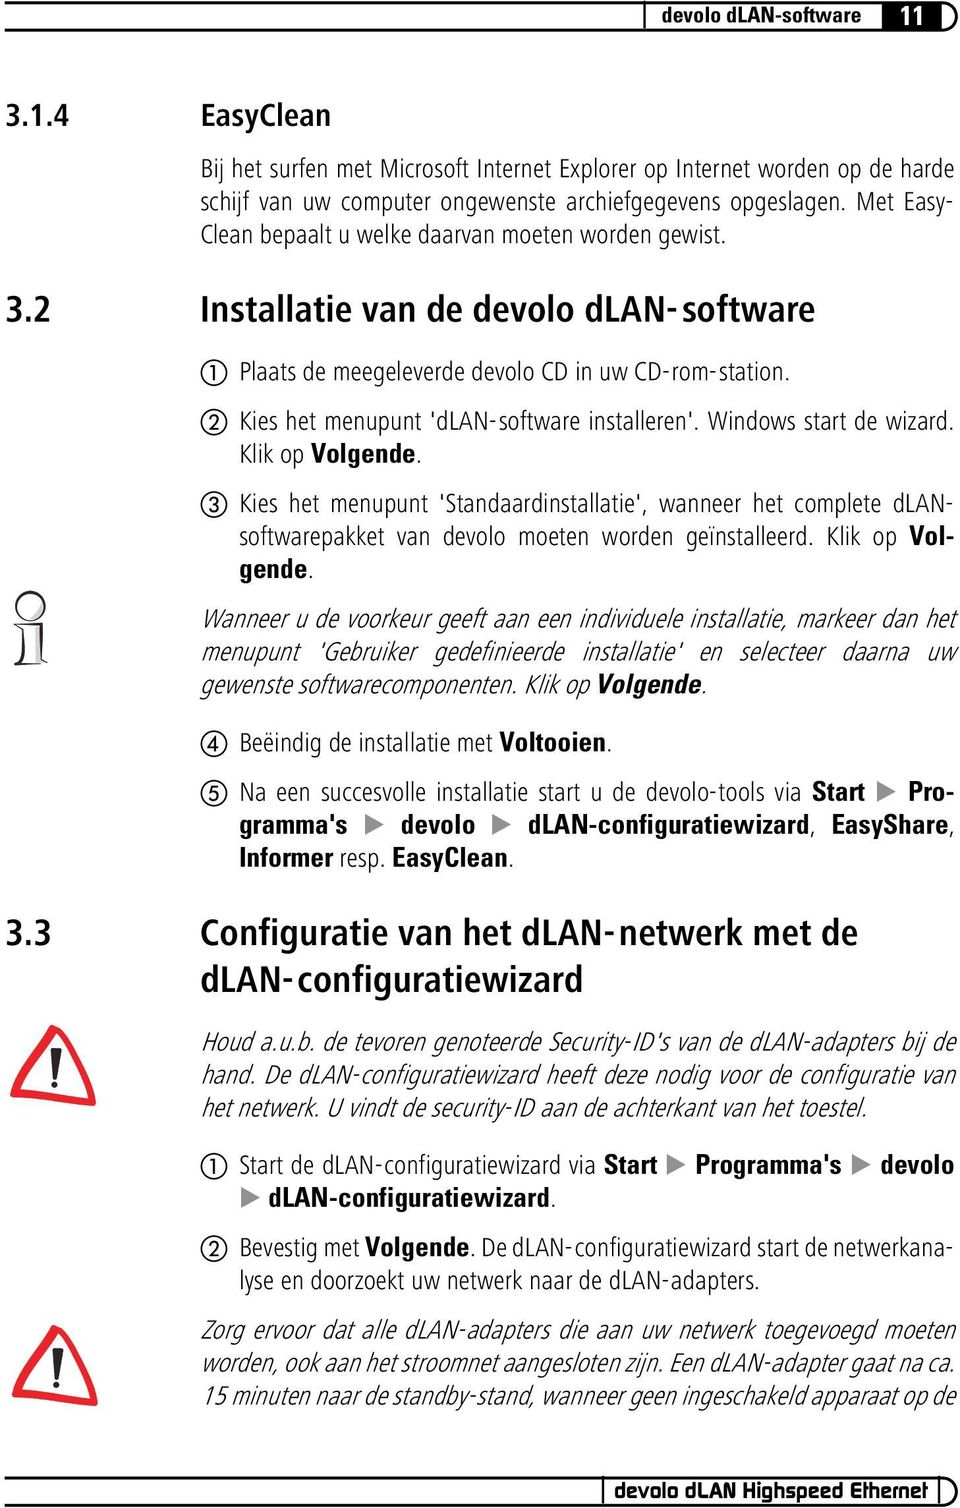 Kies het menupunt 'dlan-software installeren'. Windows start de wizard. Klik op Volgende.